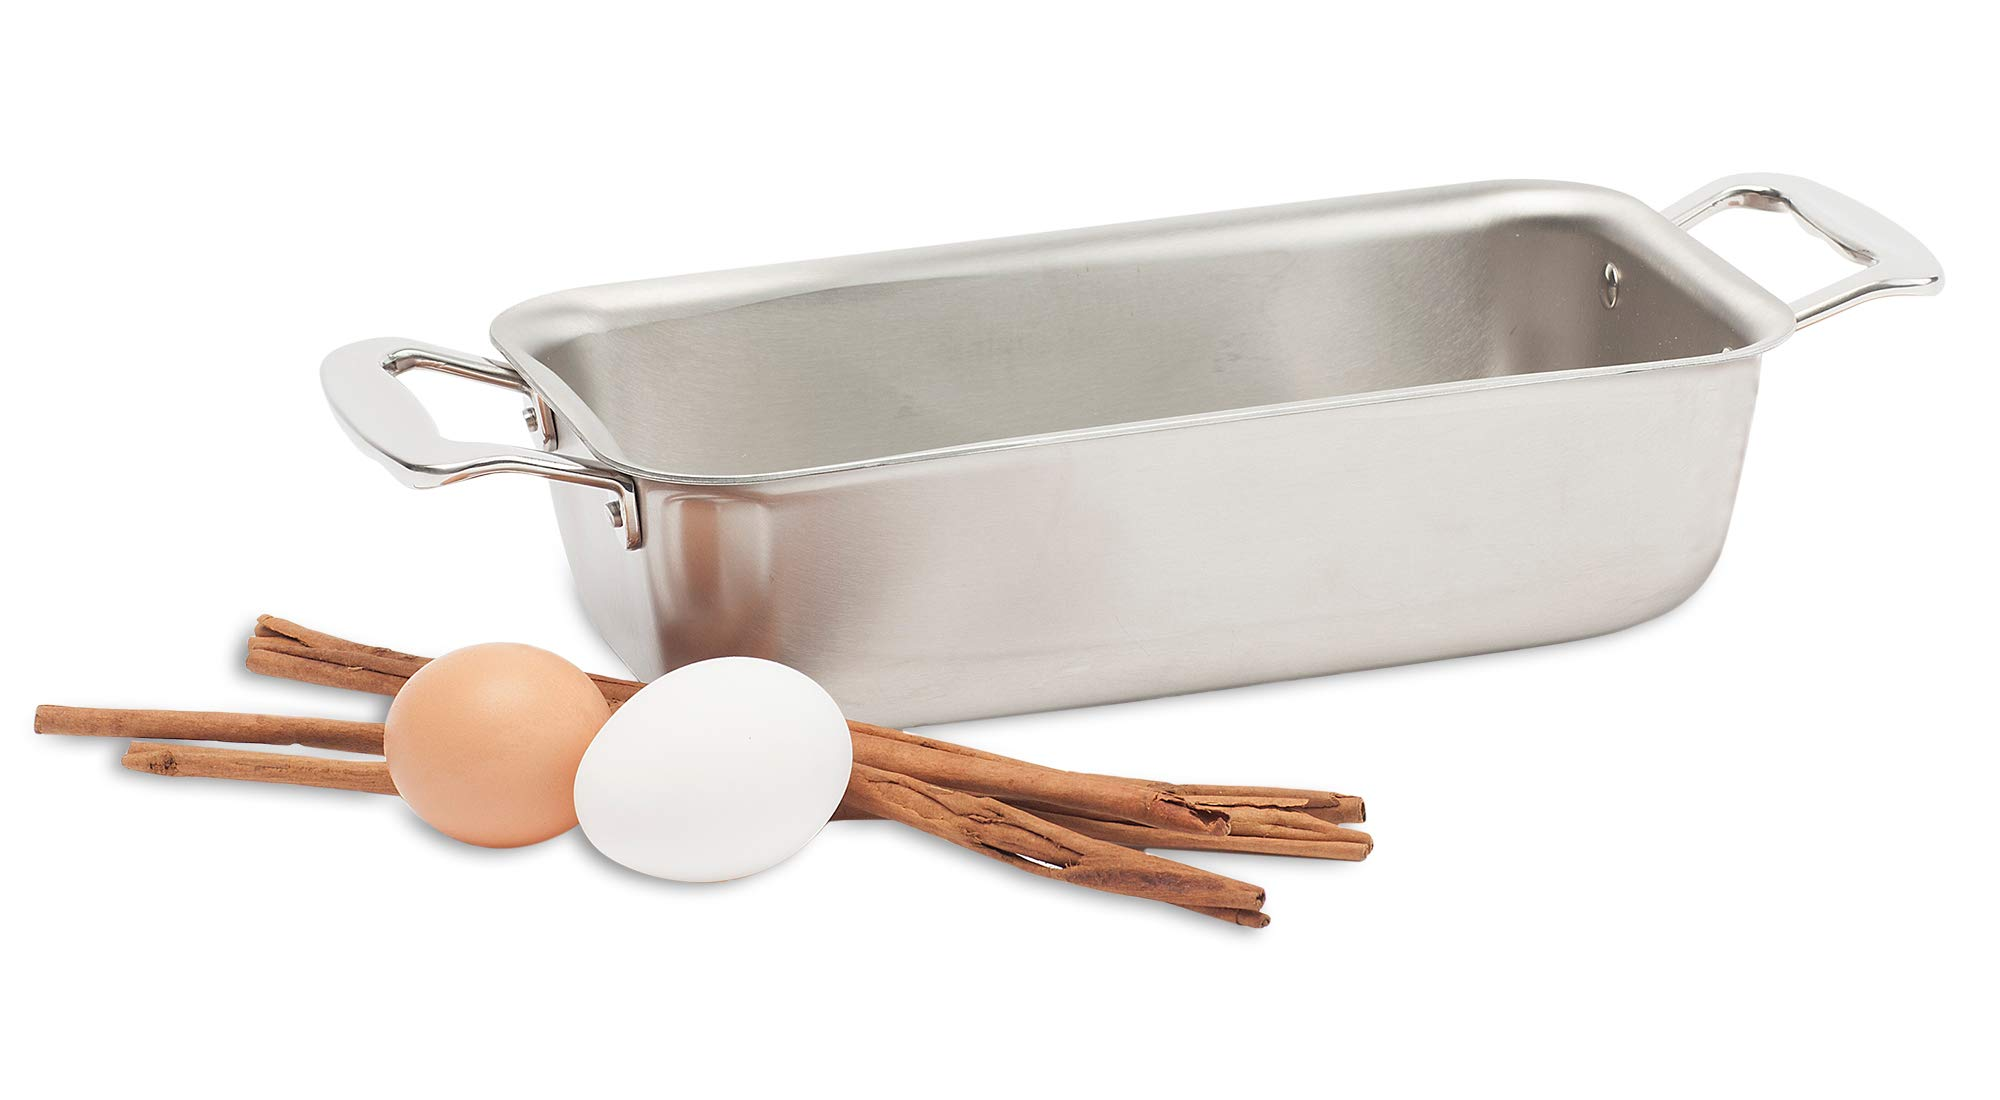 360 Stainless Steel Loaf Pan, Handcrafted in the USA, 5 Ply, Surgical Grade Stainless Bakeware, Dishwasher Safe, Professional Grade, Use as Baking Pan, Roasting Pan  (11''x6''x3'') by 360 (Image #5)